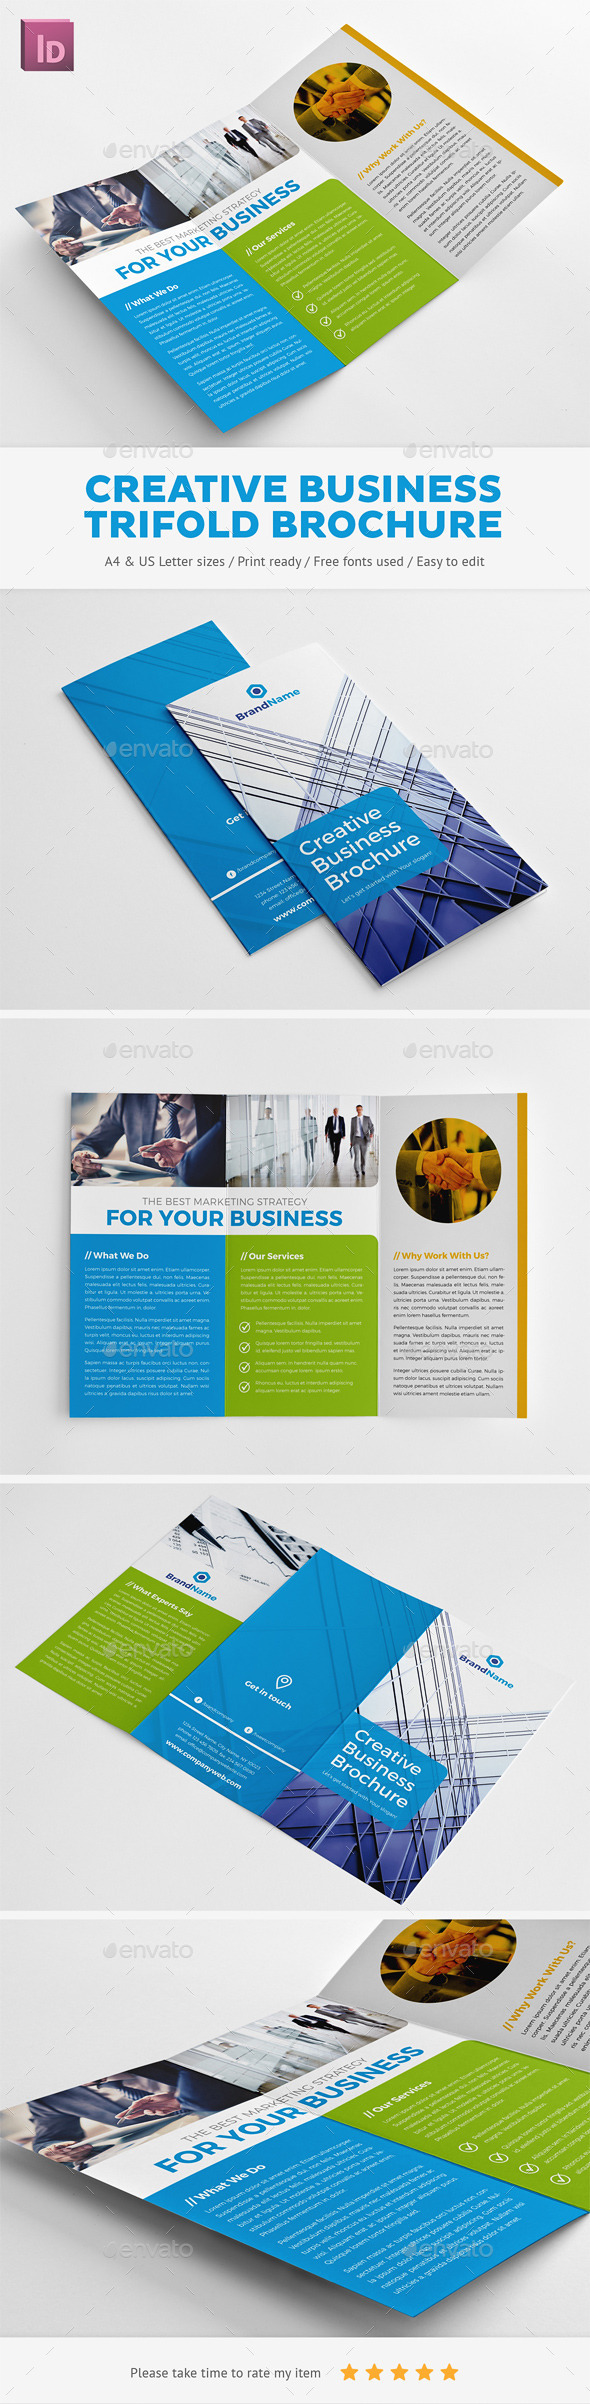 Creative Business Trifold Brochure - Corporate Brochures